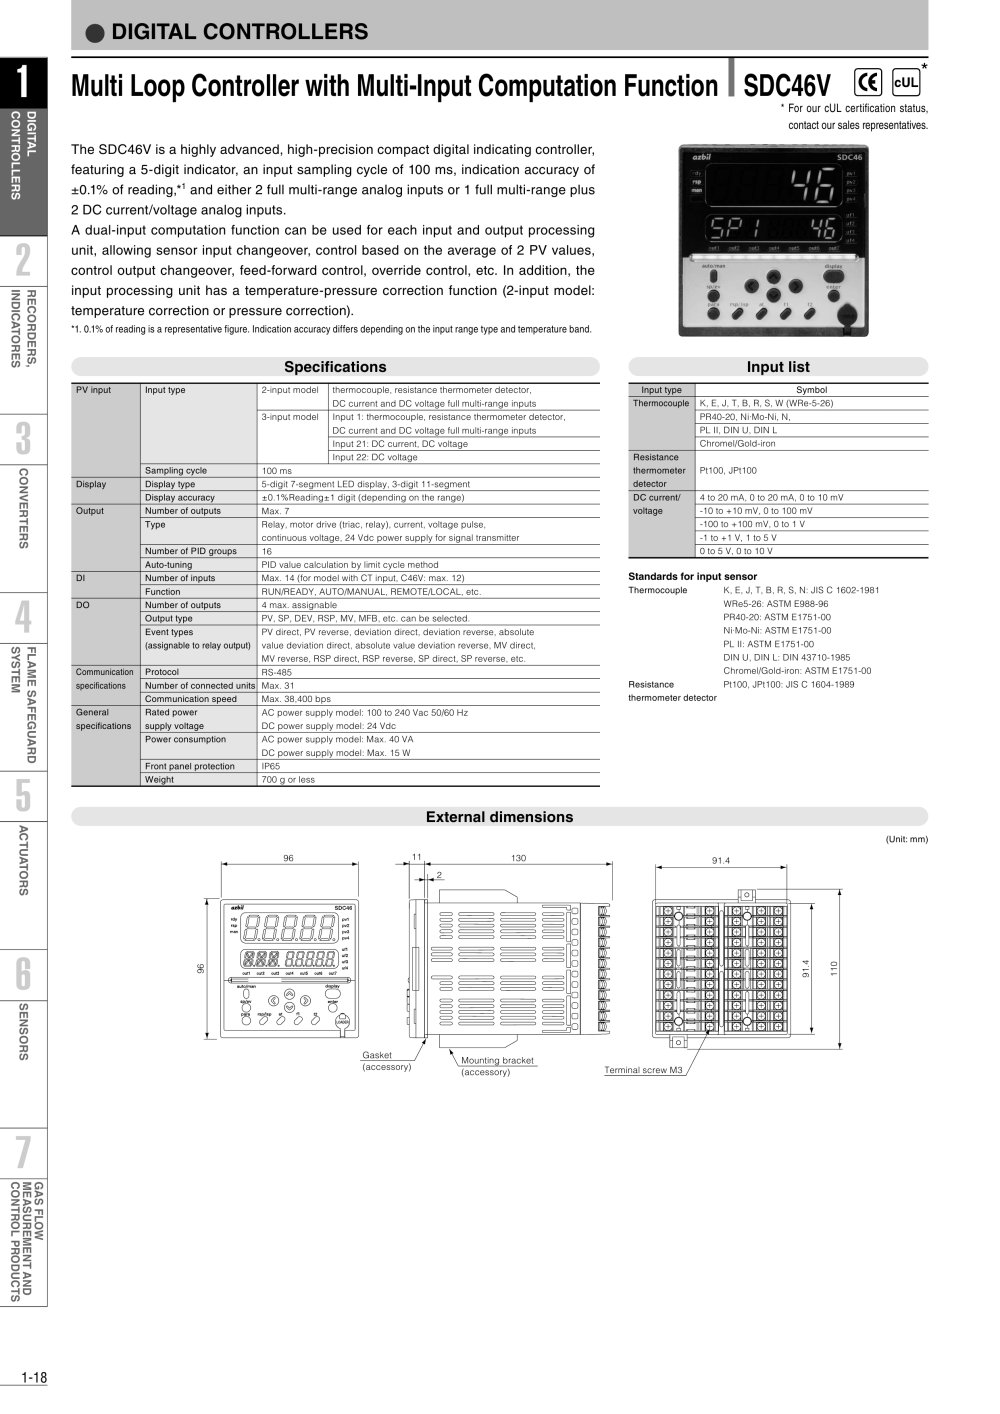 Multi loop controller with multi input computation function sdc46v multi loop controller with multi input computation function sdc46v 1 2 pages xflitez Images